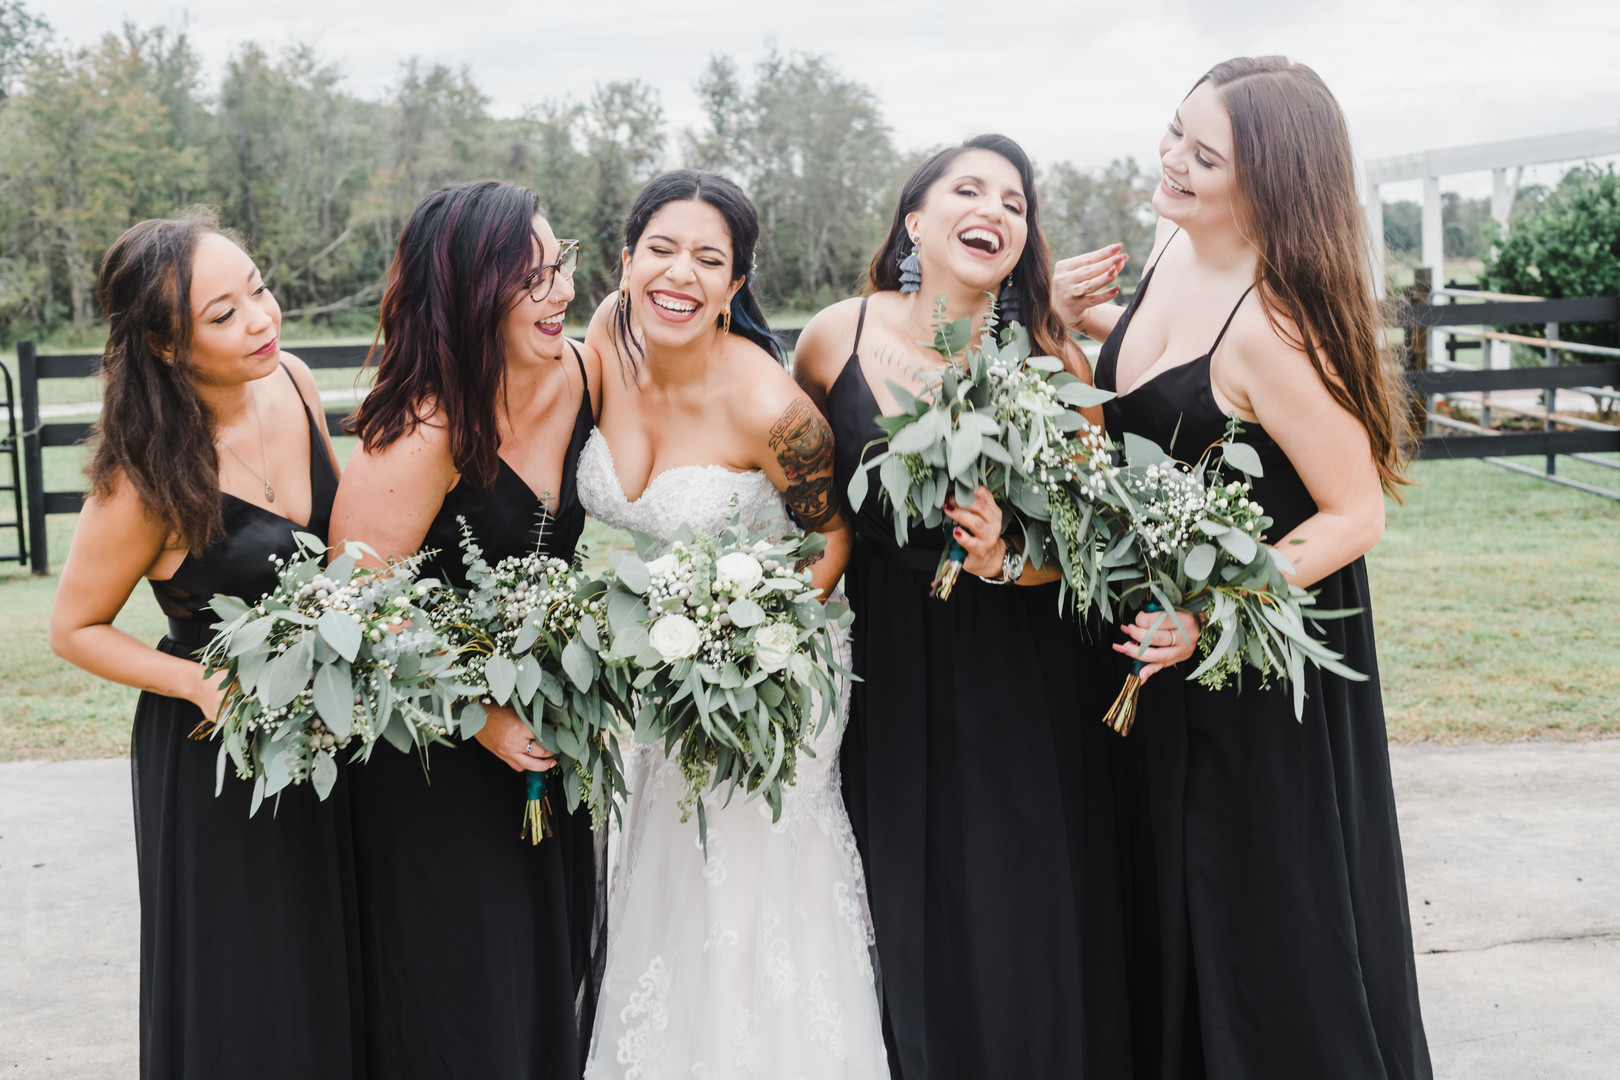 ask your bridesmaids while dress shopping